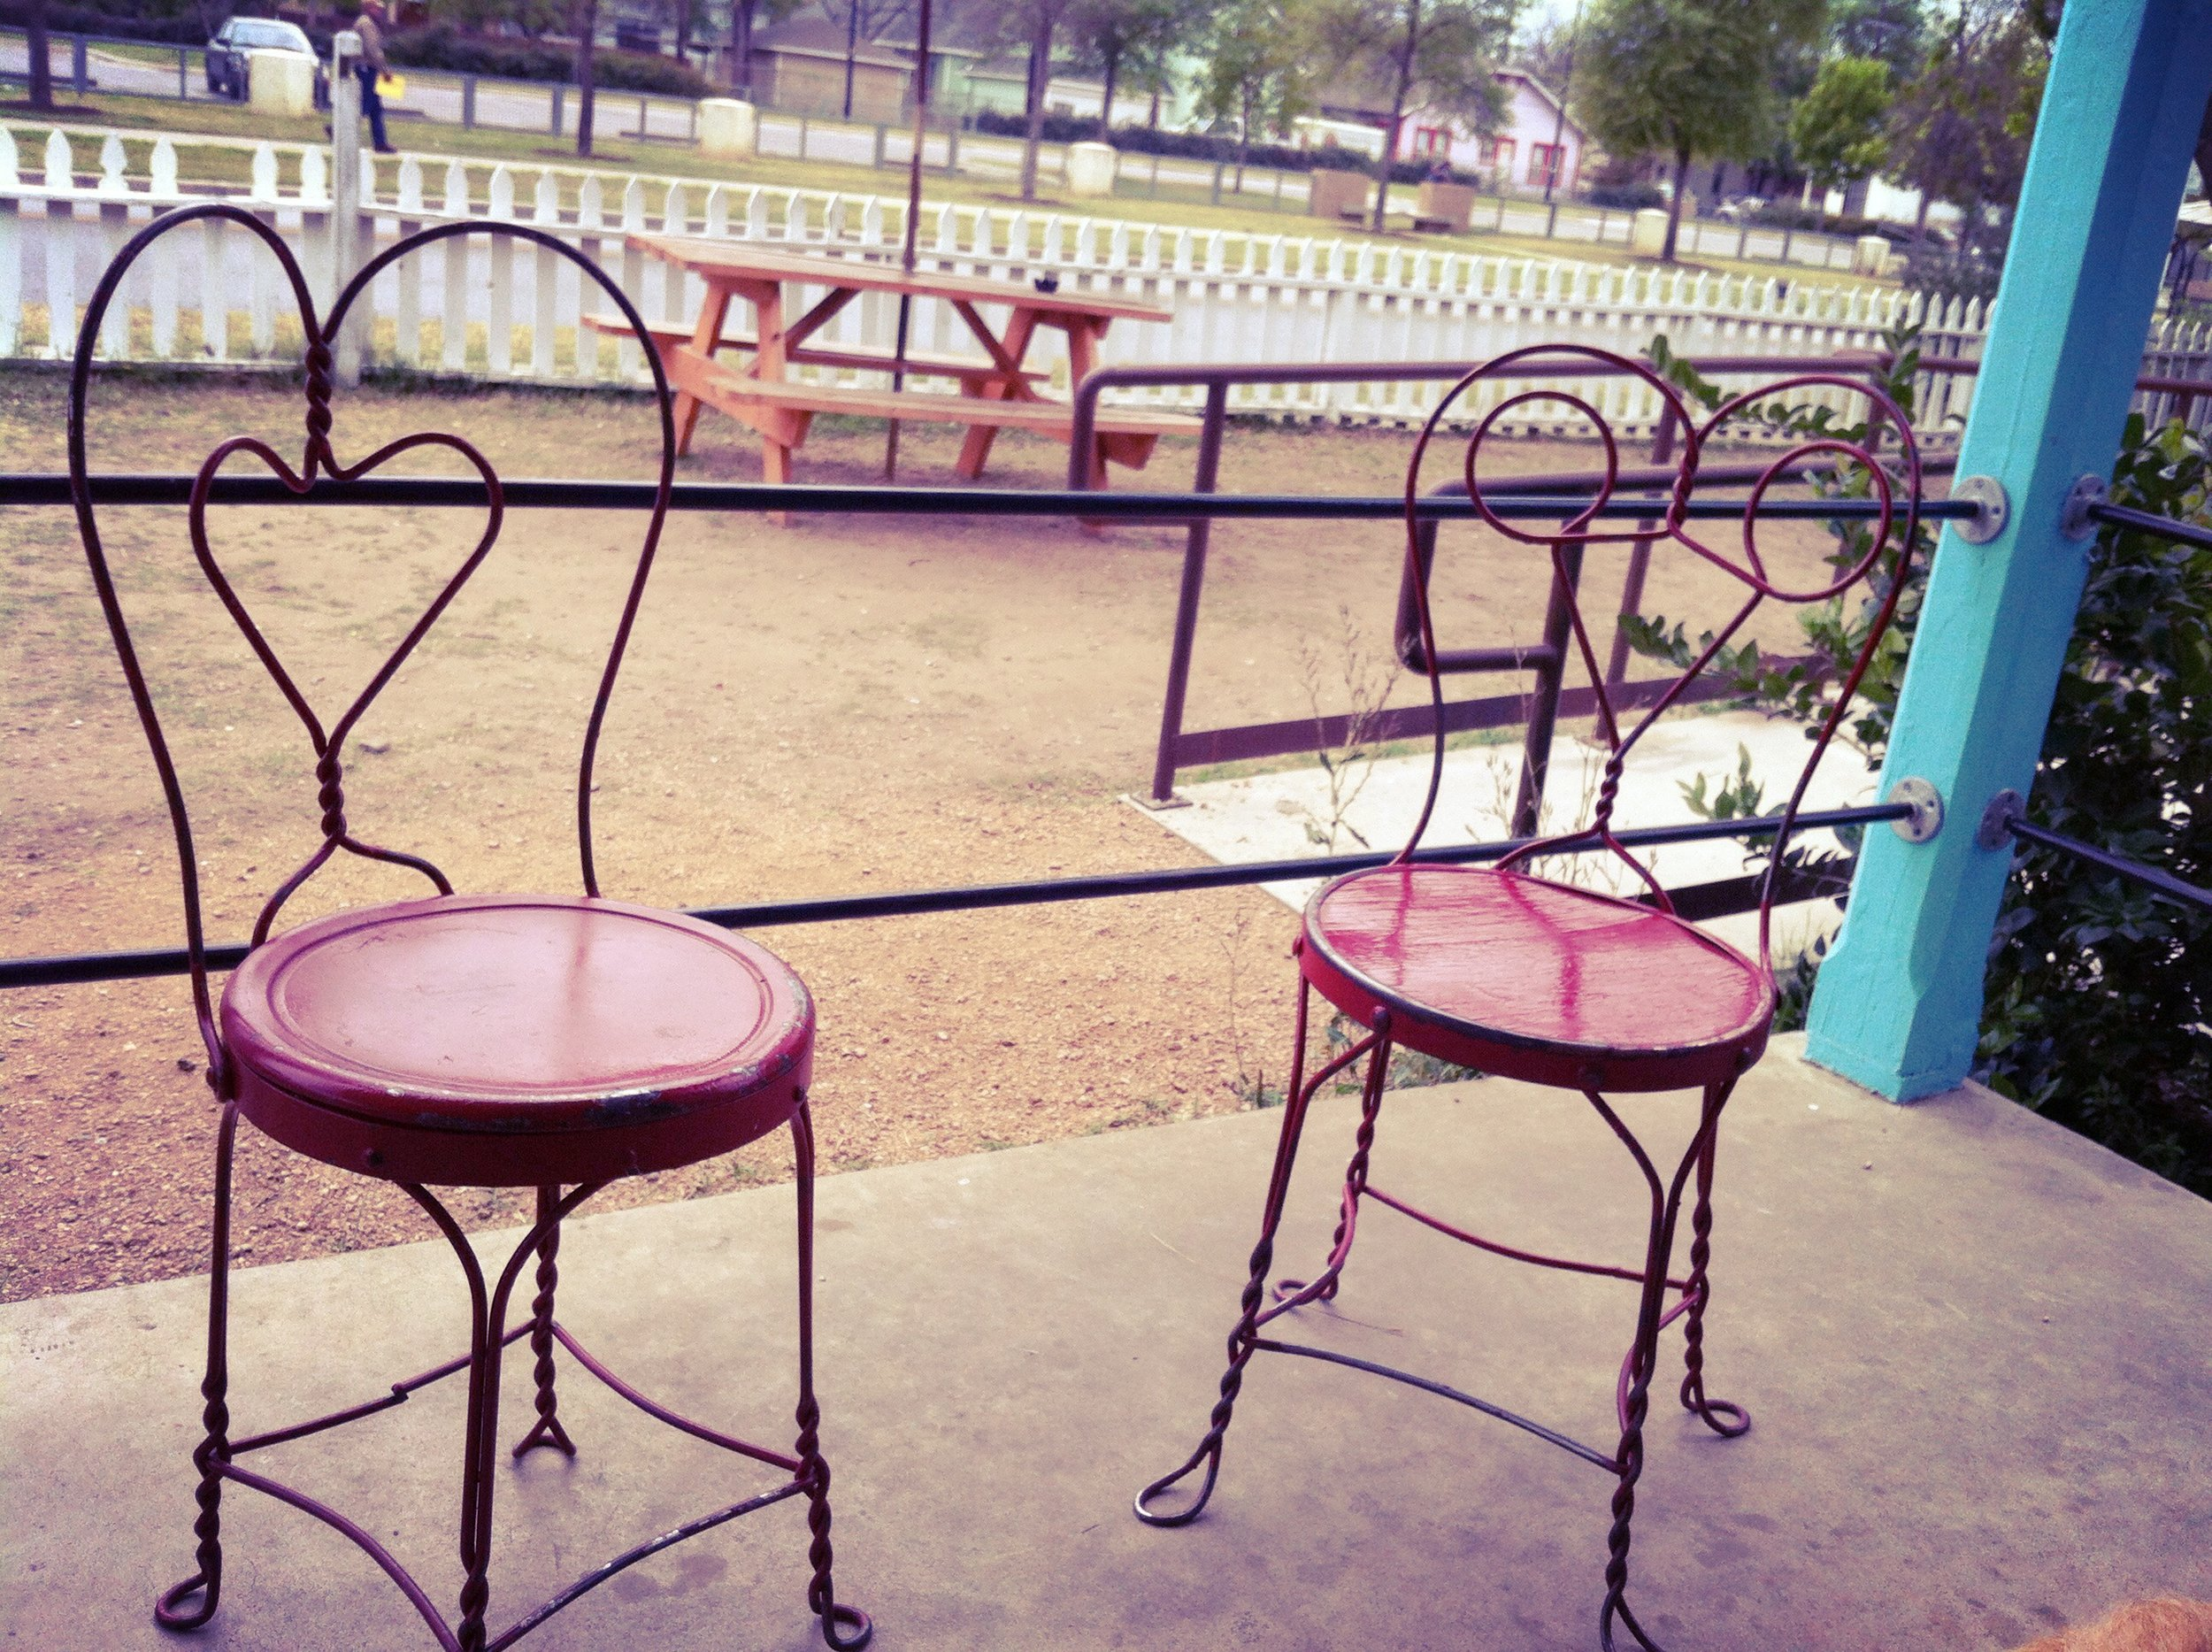 I thought these chairs were adorable!